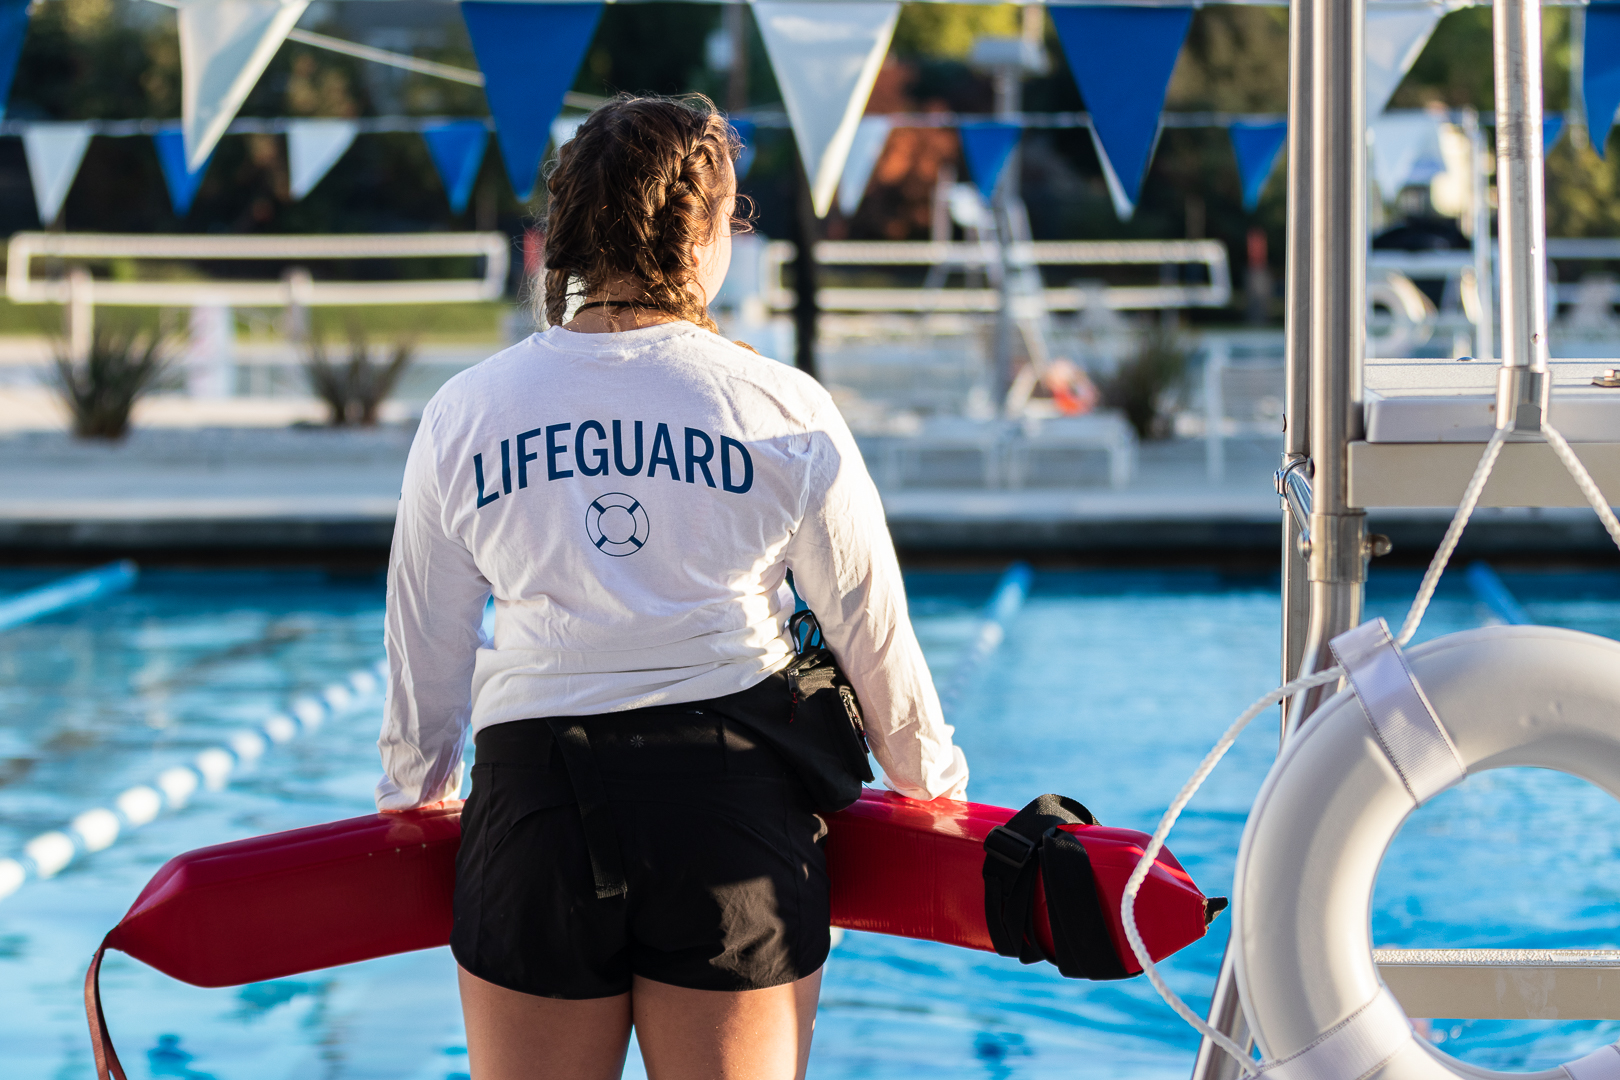 An ASI lifeguard stands looking over the pool with a flotation device